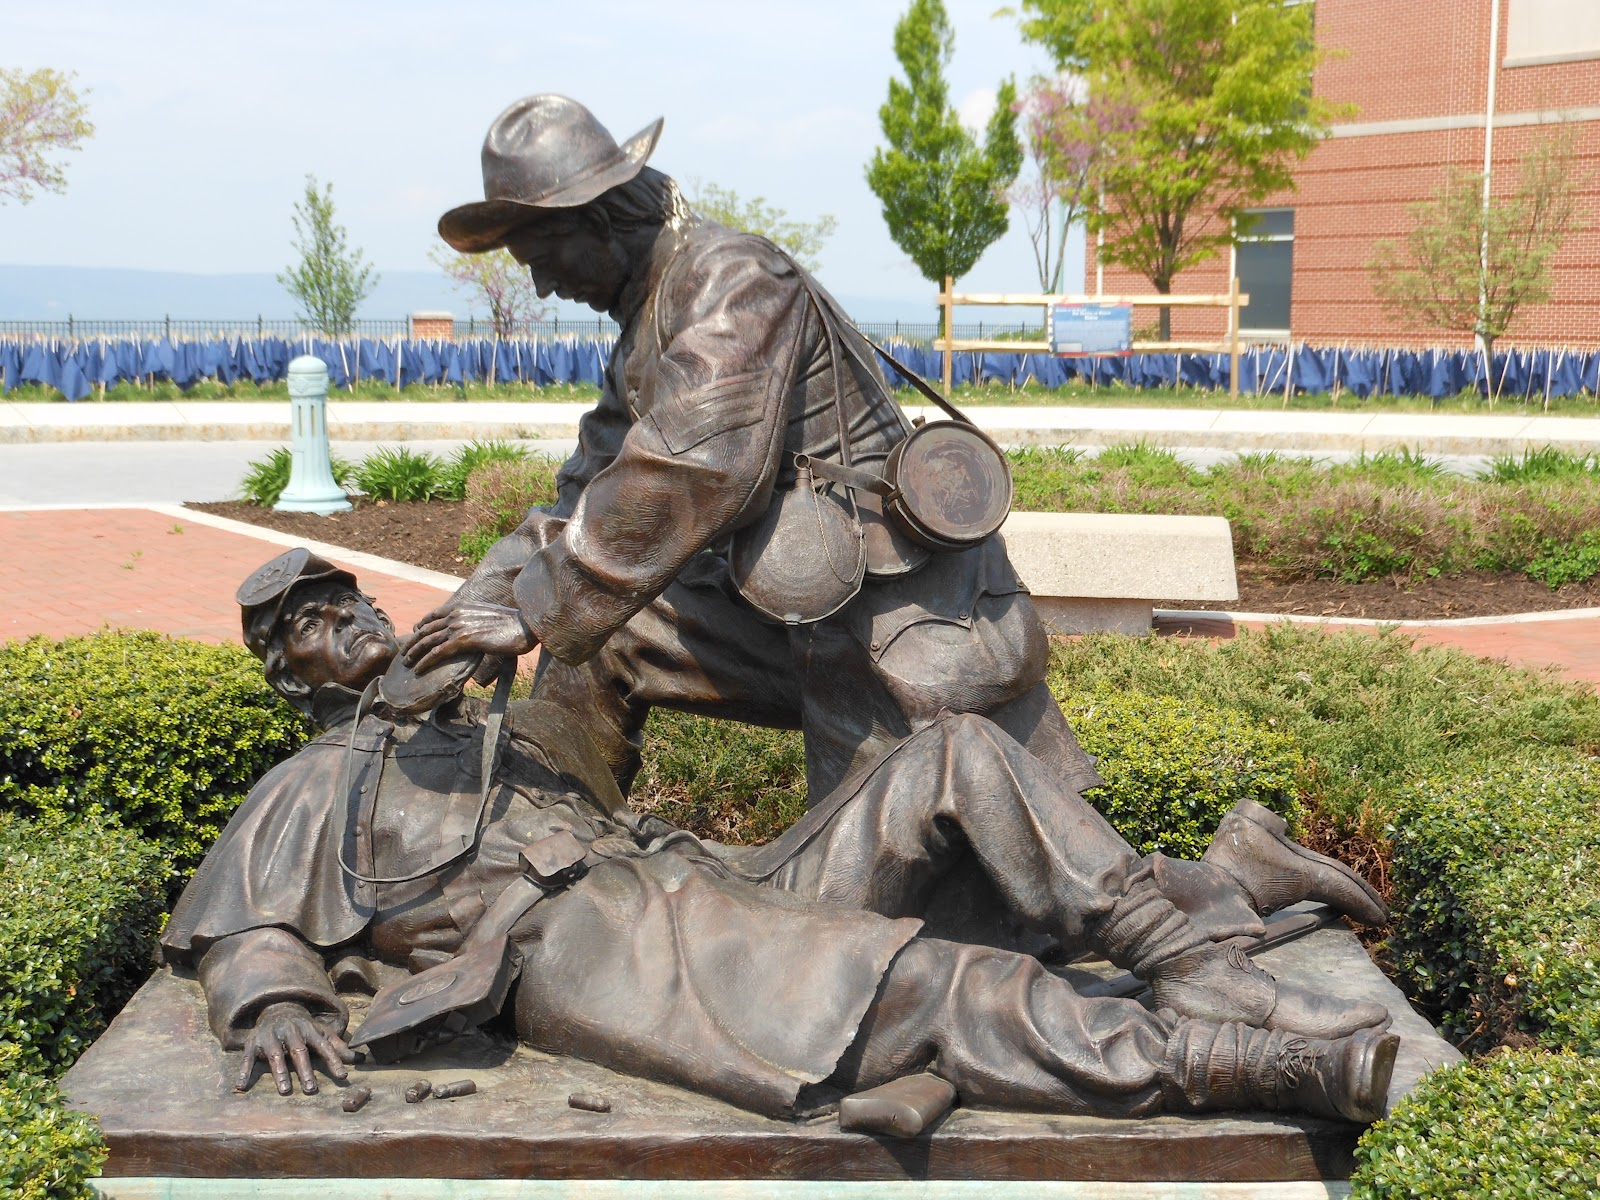 Monument to mercy stands in front of the national civil war museum.